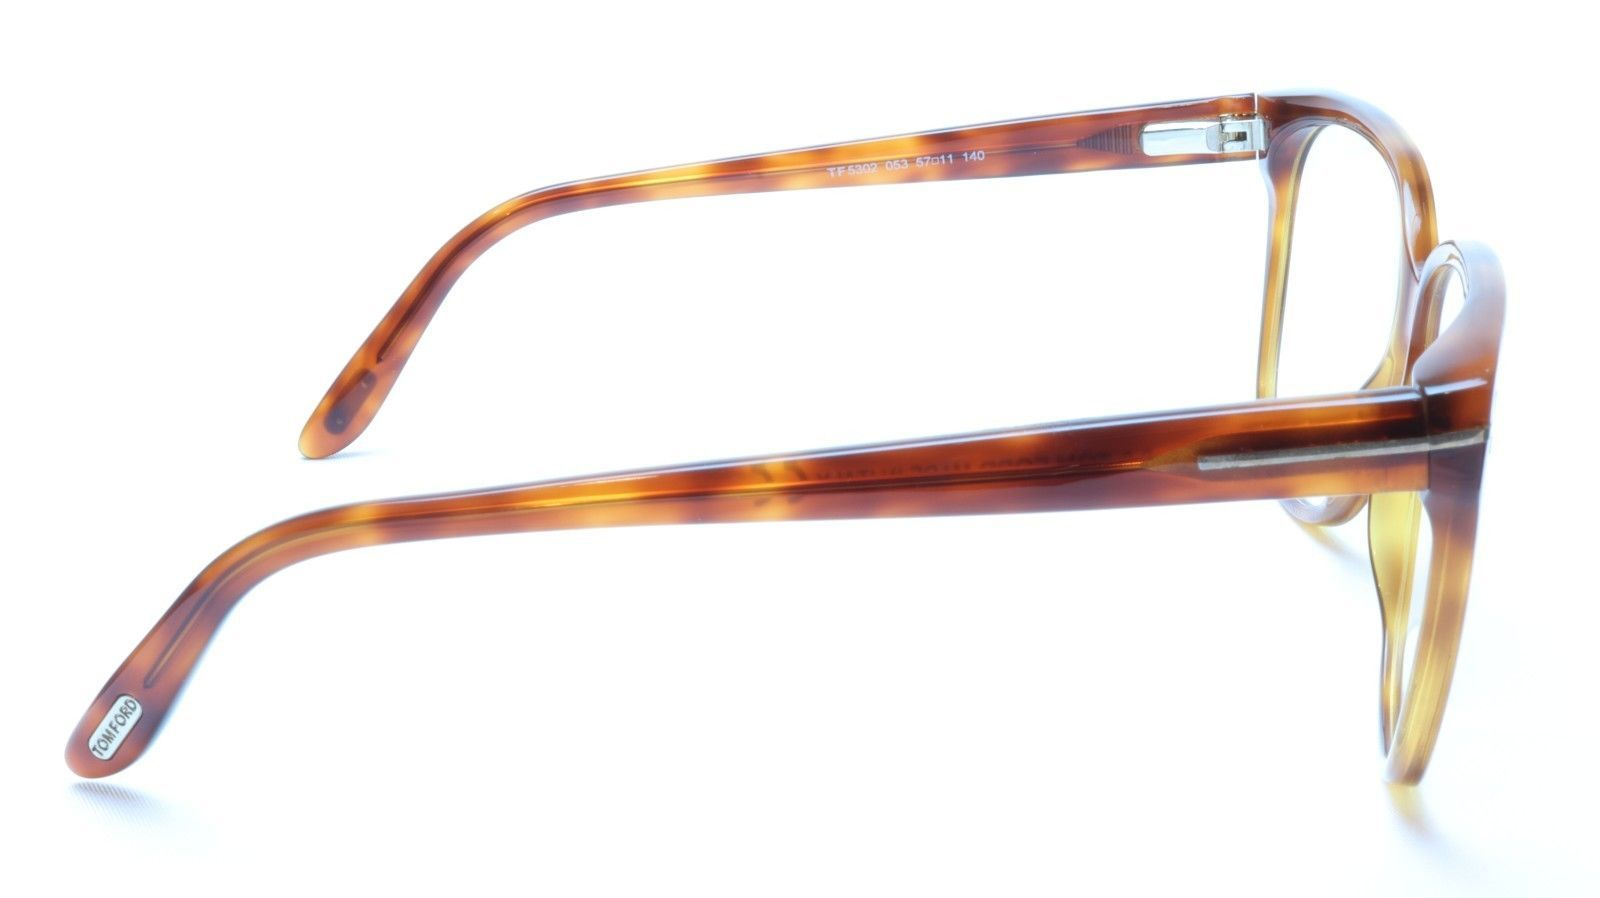 Tom Ford TF5302 053 Eyeglasses Frame Brown Tortoise Acetate Italy Made 57-11-140